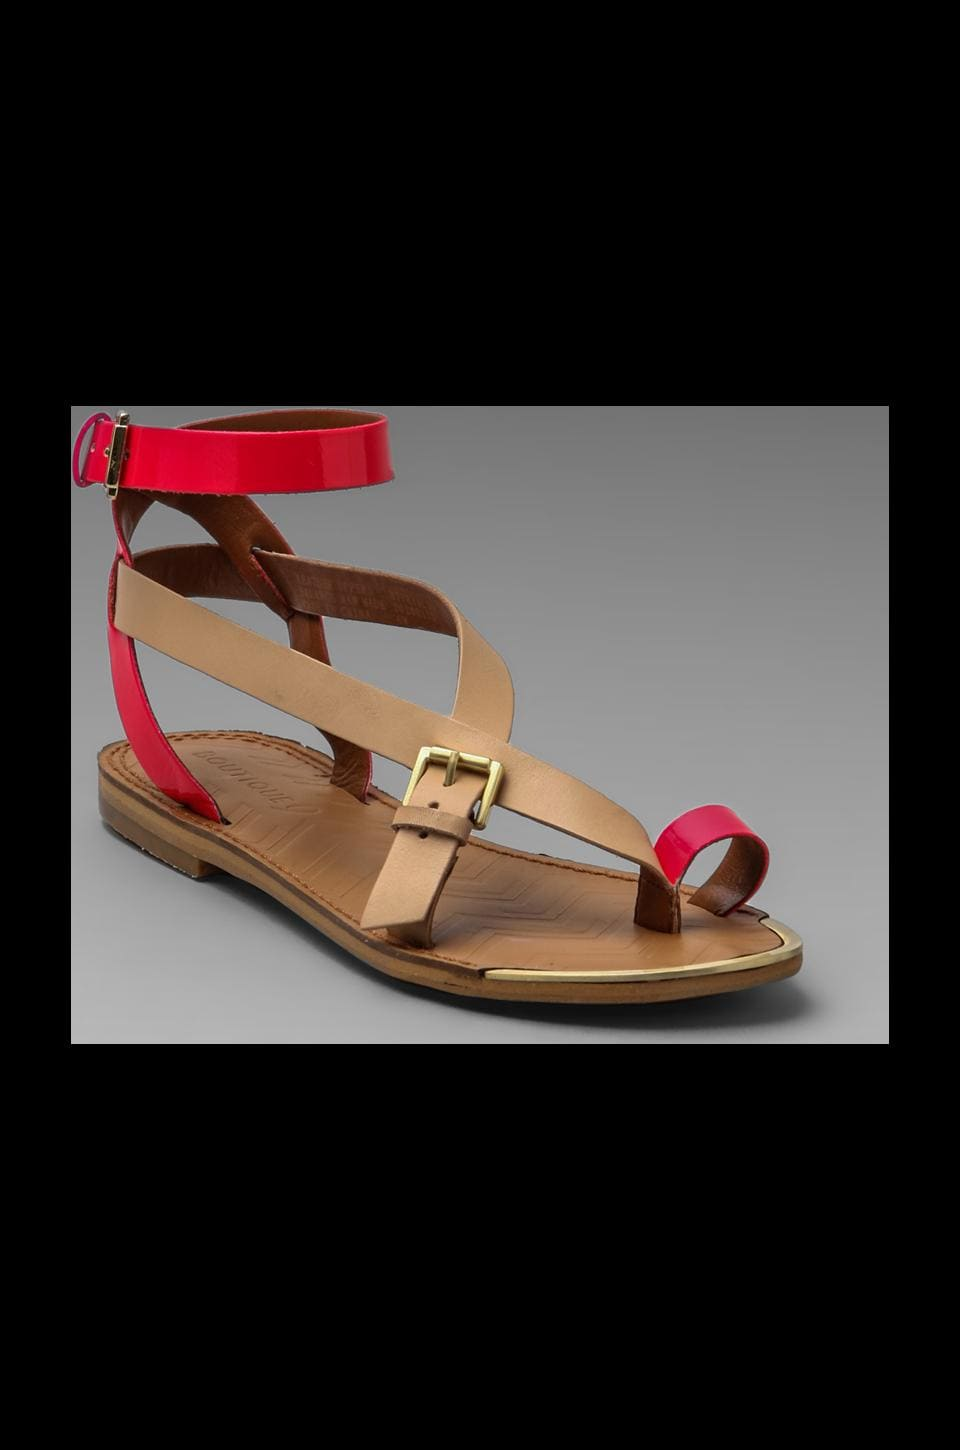 Boutique 9 Strappy Sandal in Natural/Pink